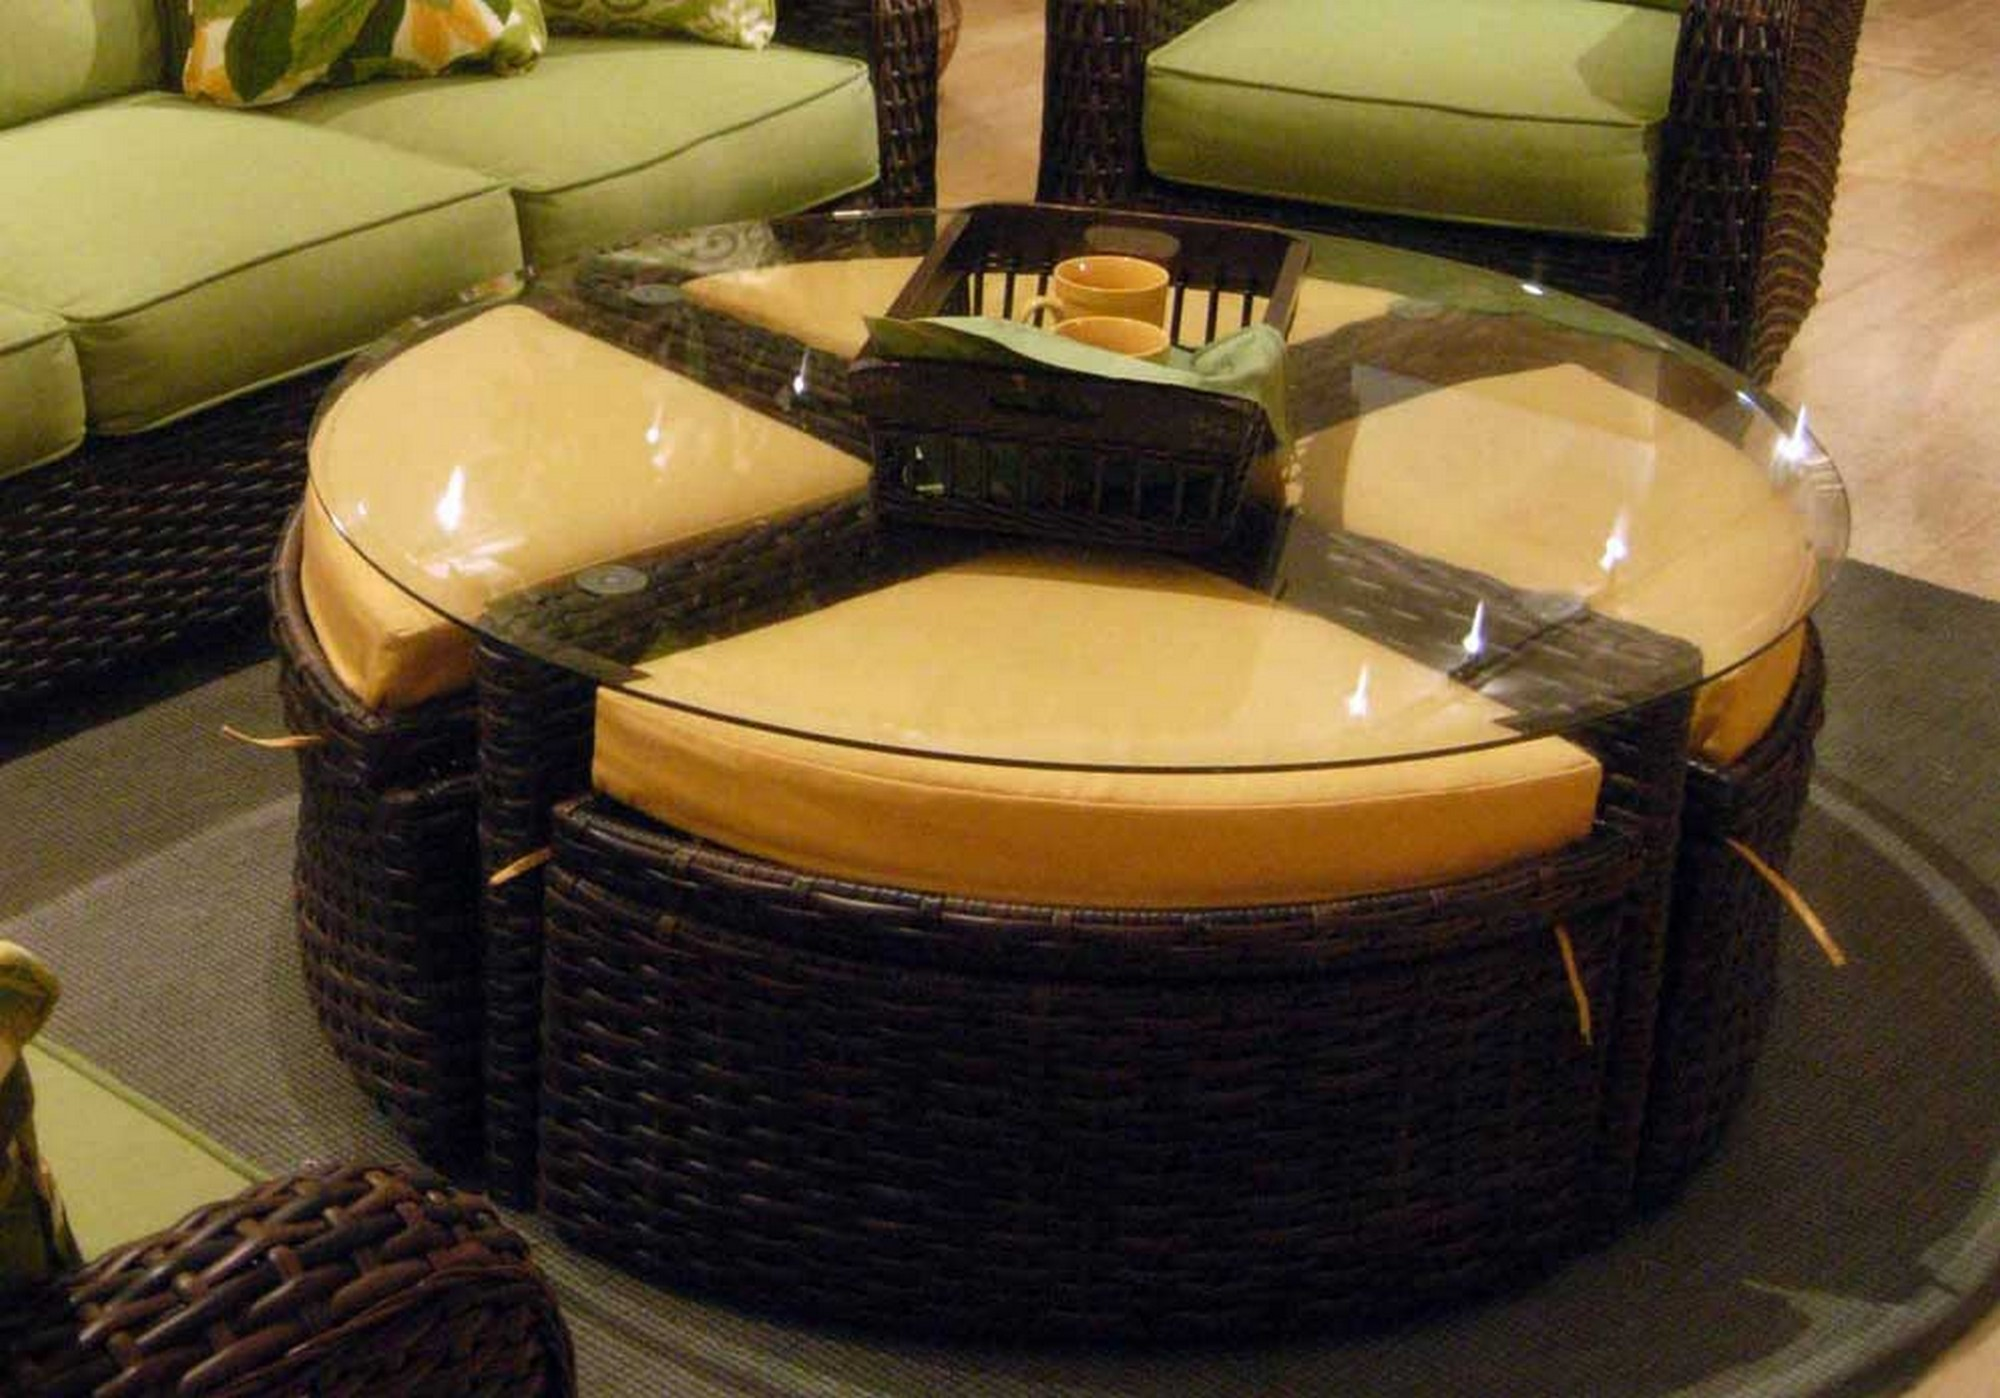 living room resin wicker accent table patio side dark brown rattan coffee square ott storage full size hampton bay spring haven bar type dining smoked mirror bedside high narrow